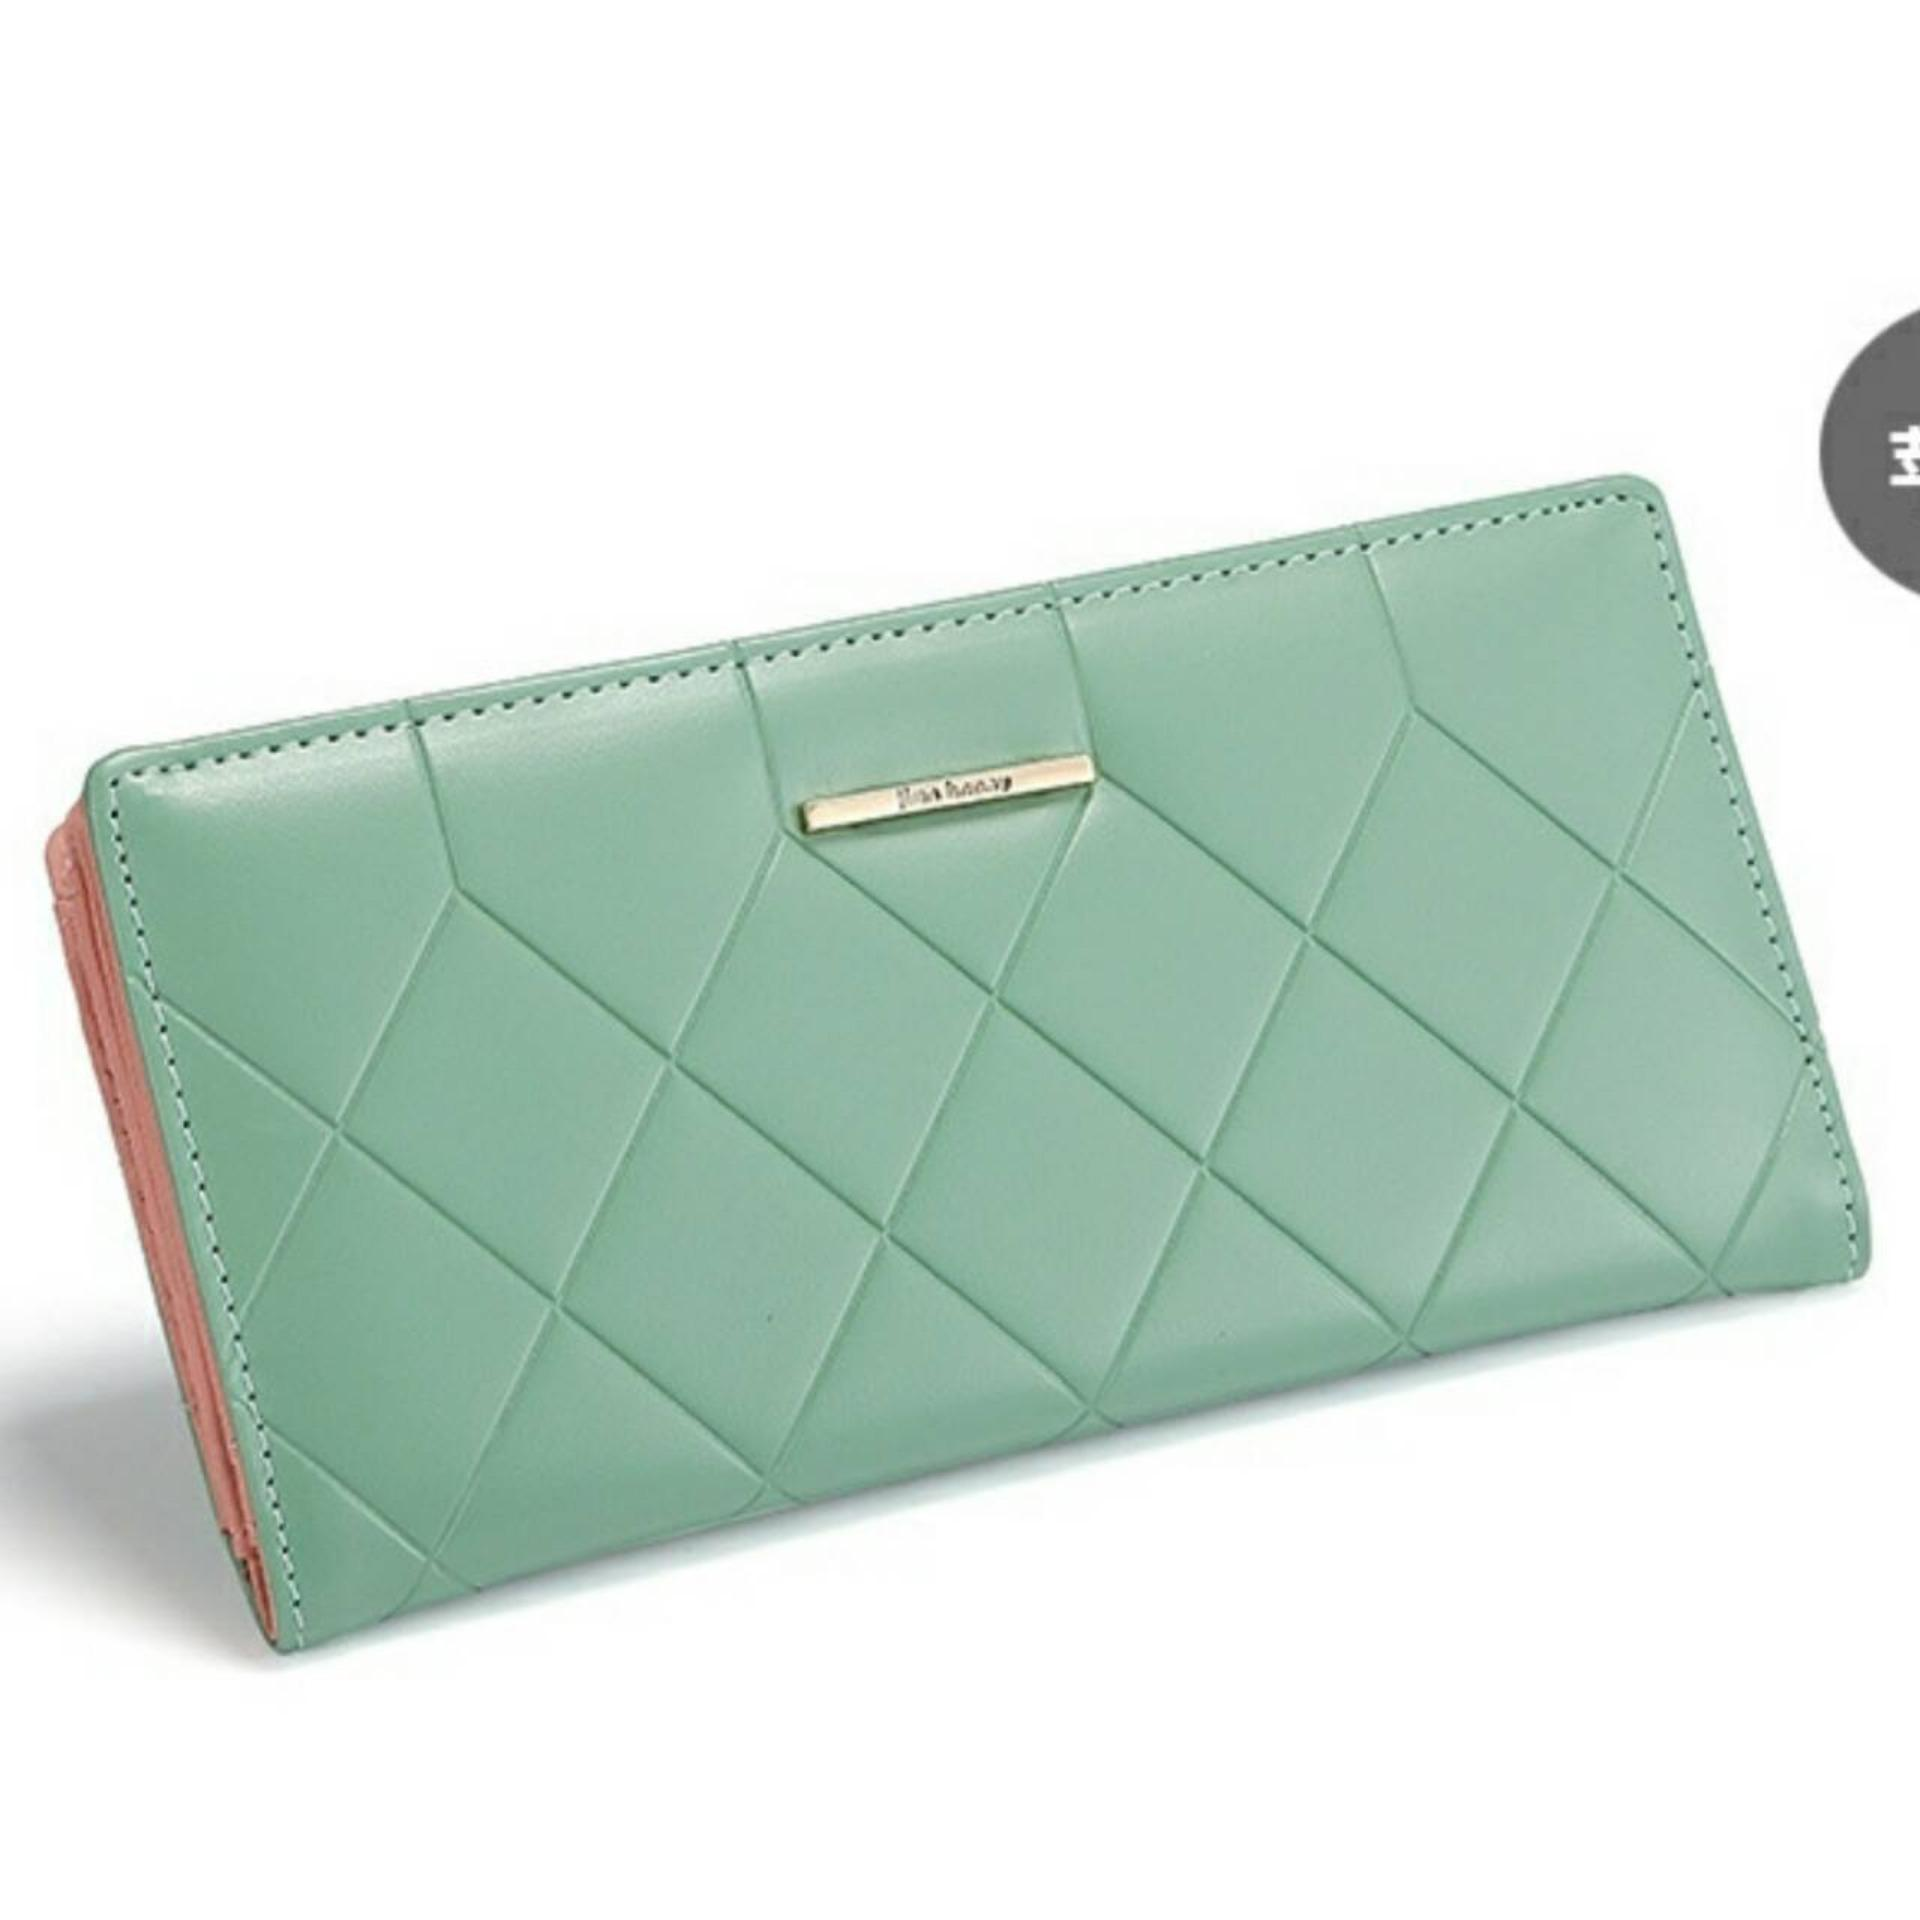 Beli Jims Honey Exclusive Dompet Fashion Import Wanita April Wallet Tosca Online Murah